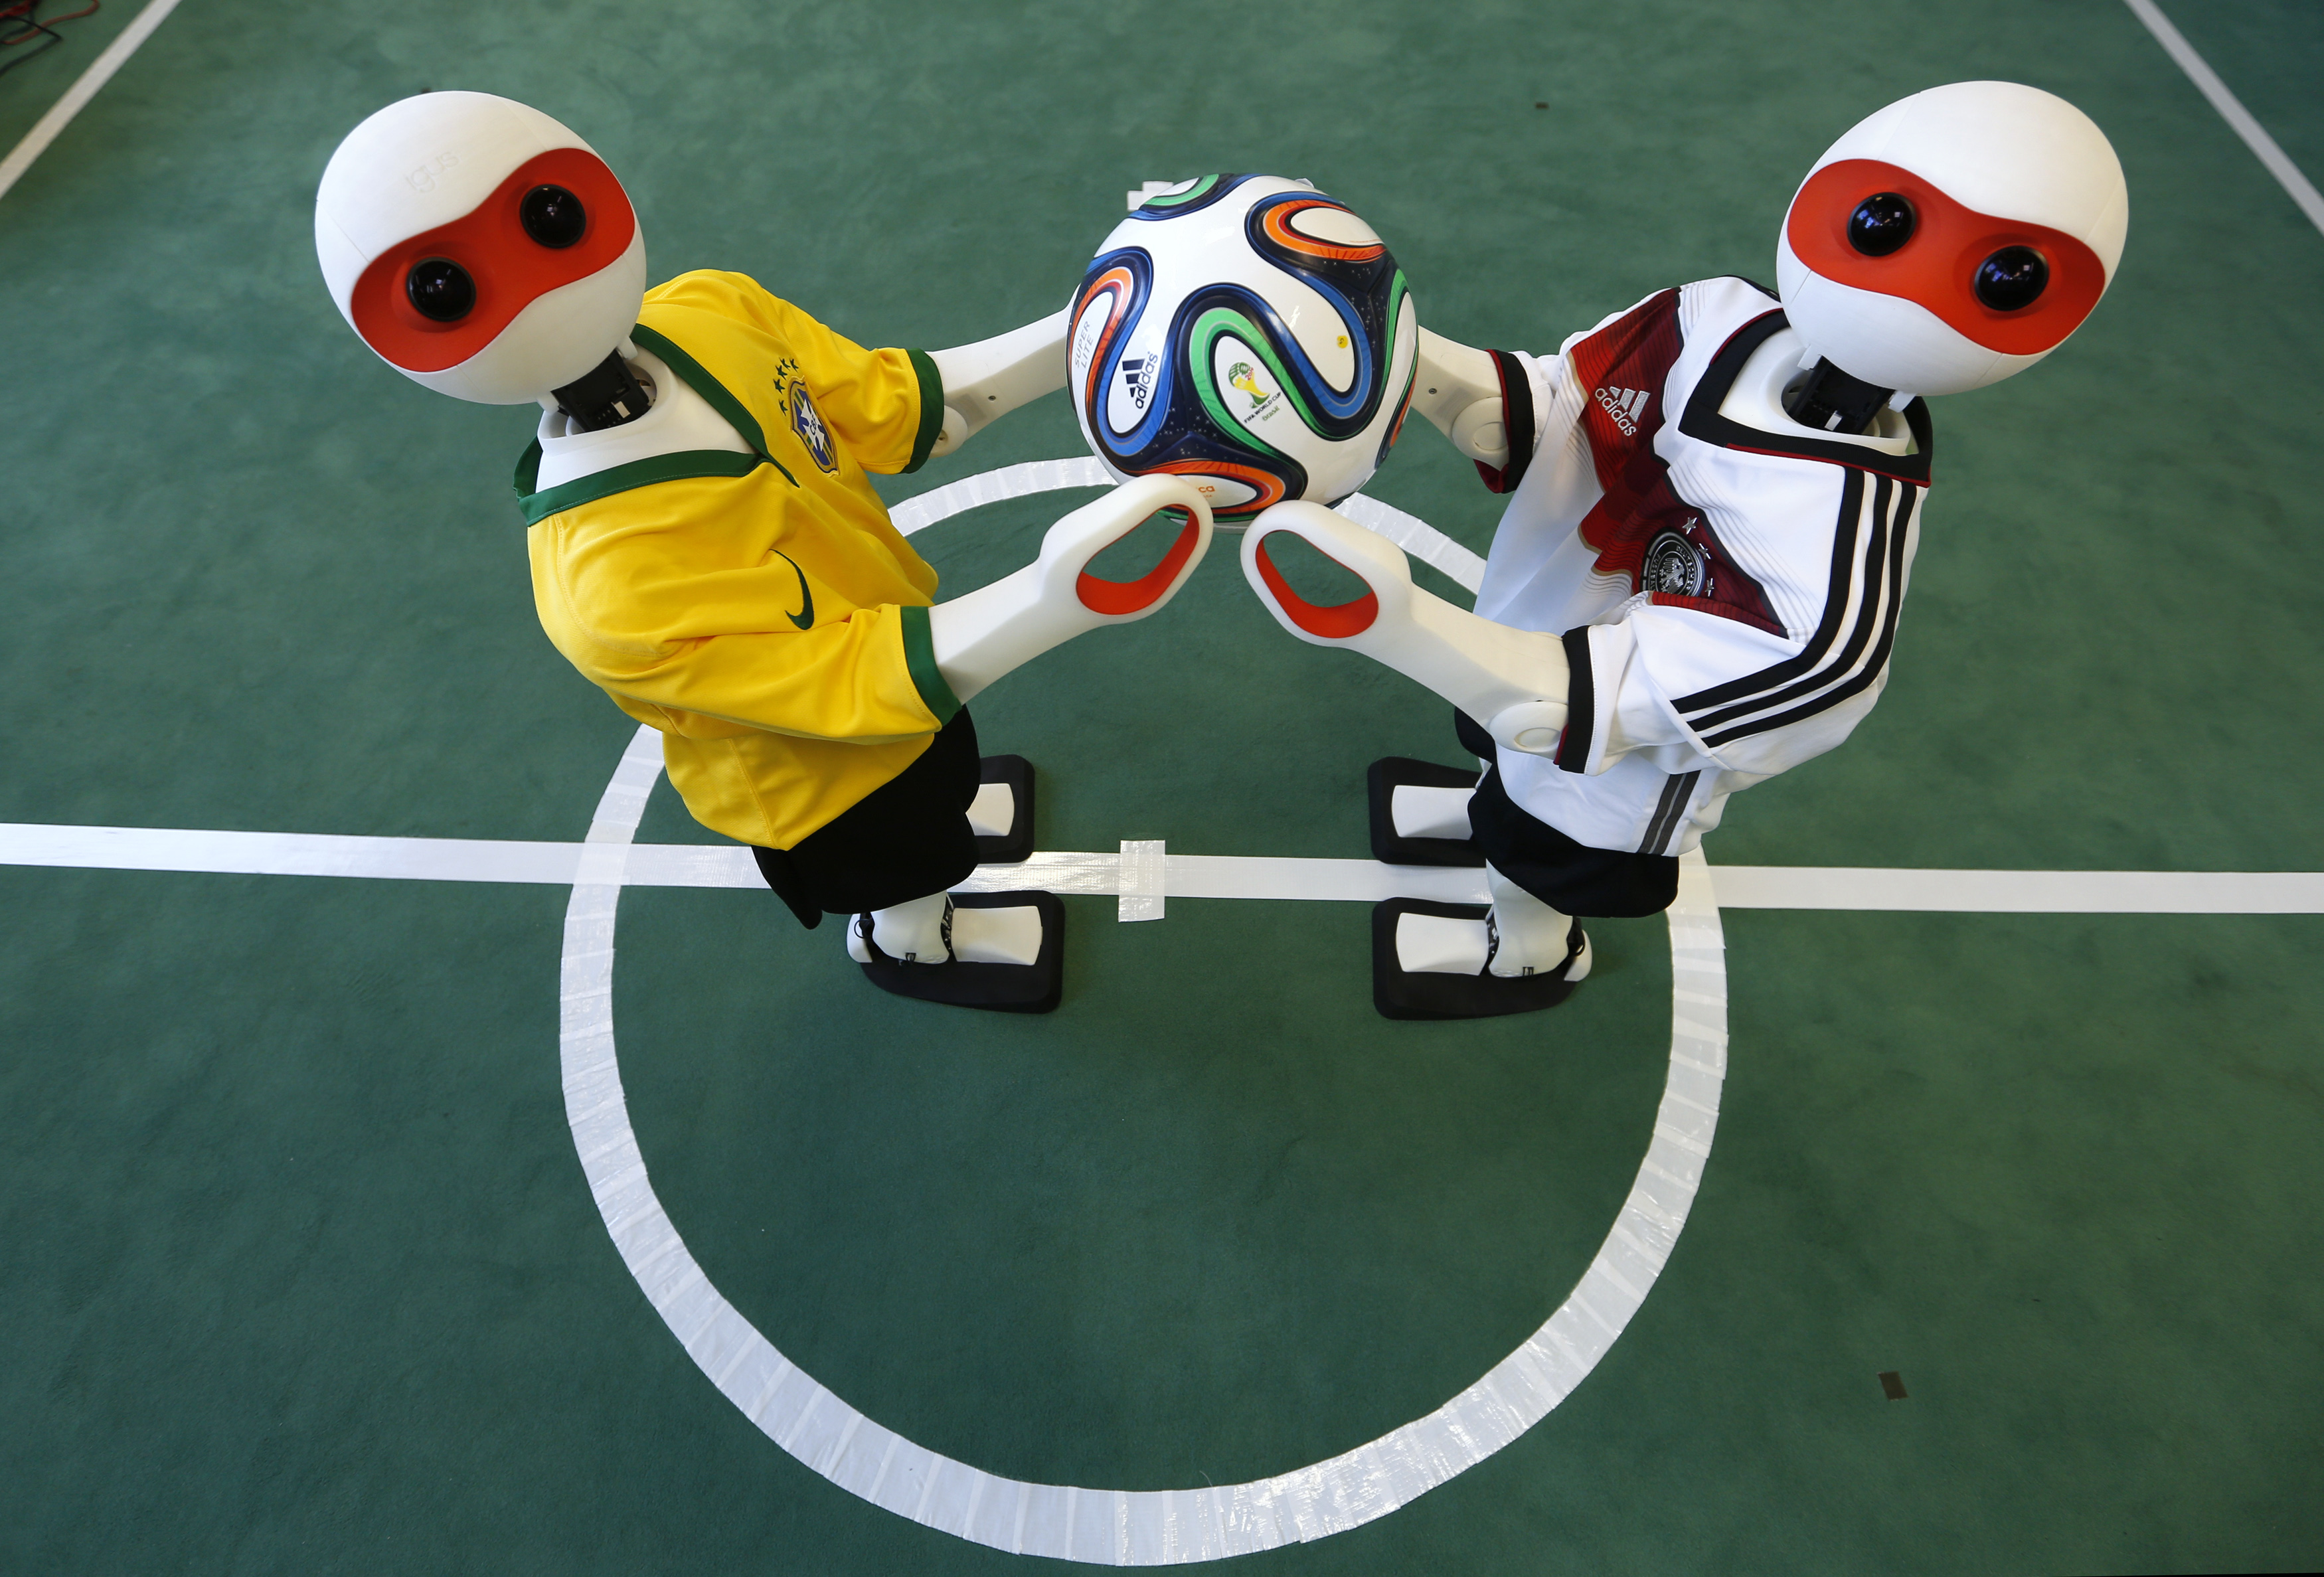 FILE - Humanoid robots dressed in the colors of Germany's and Brazil's national soccer team jerseys hold the official 2014 World Cup soccer ball during a photo opportunity at the Institute for Computer Science at the University of Bonn in Bonn, Germany, June 18, 2014. (Reuters)